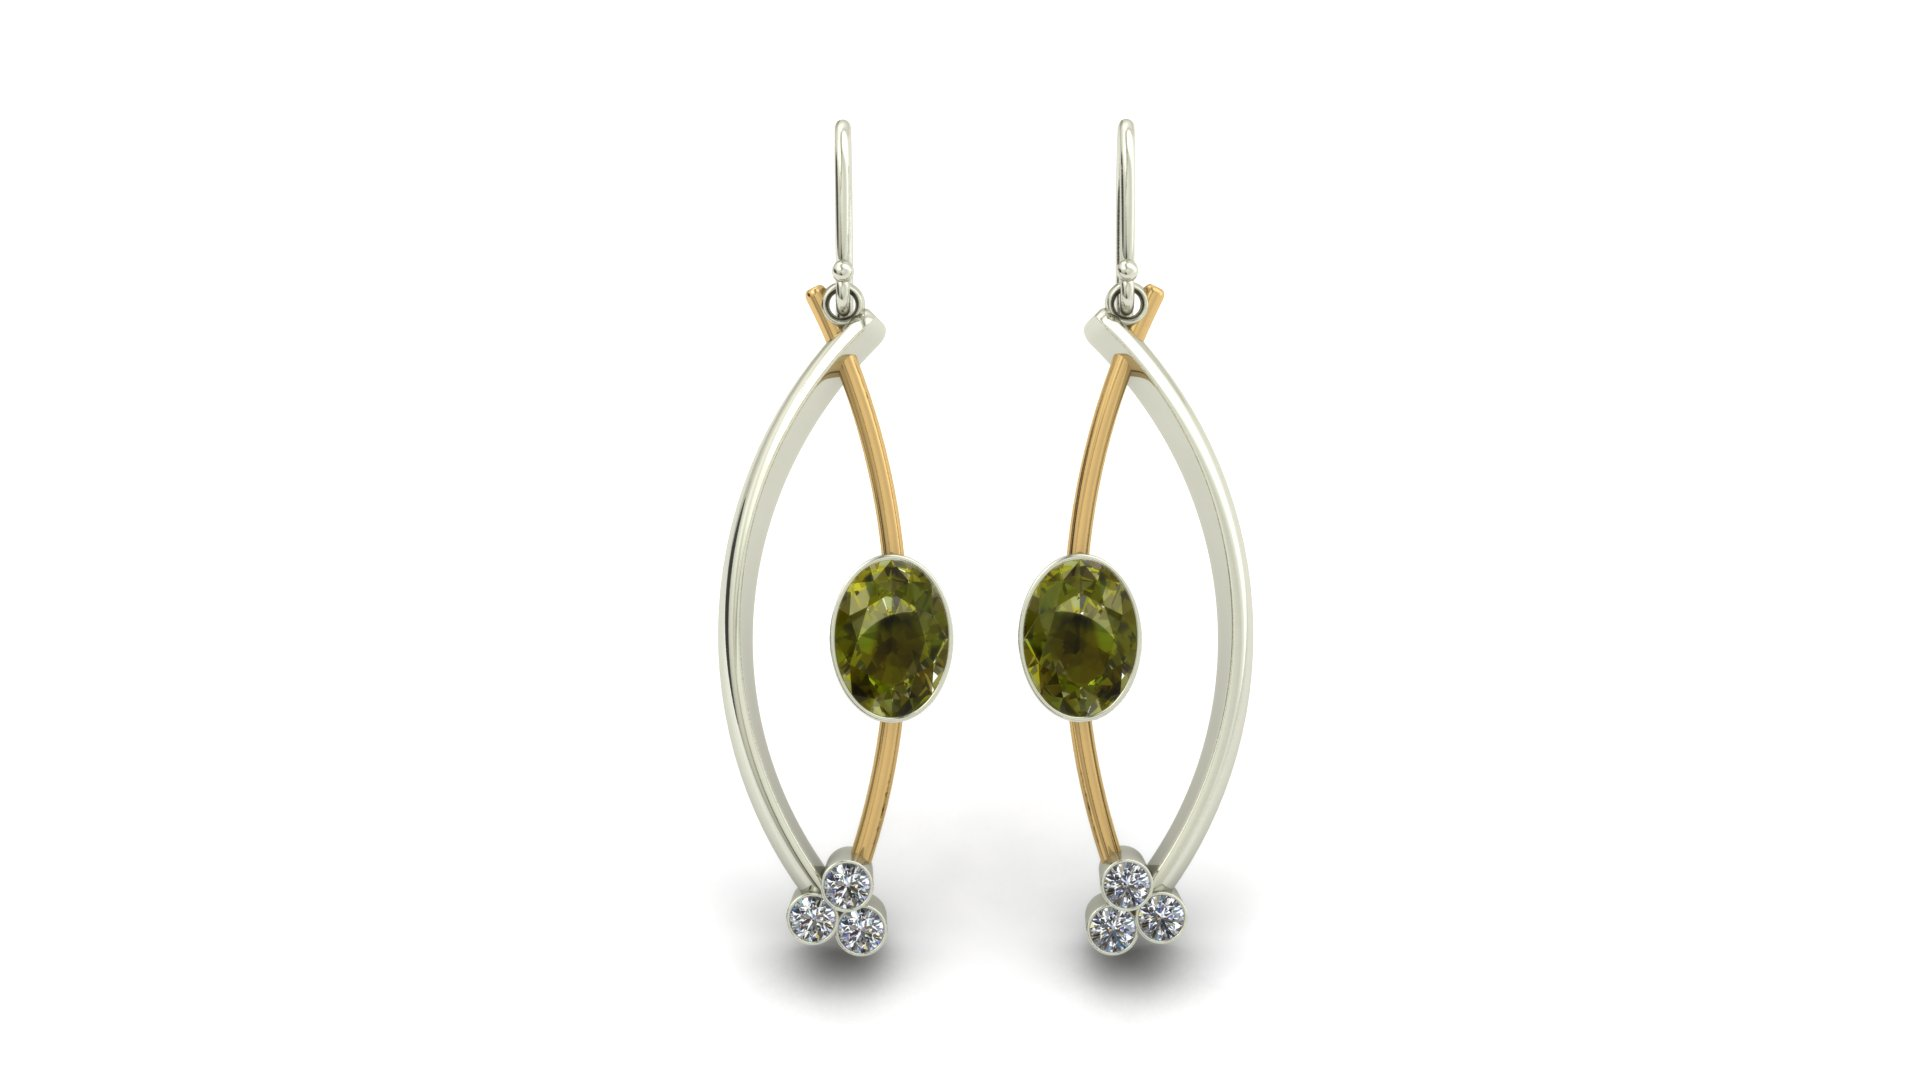 MODERN TOURMALINE EARRINGS